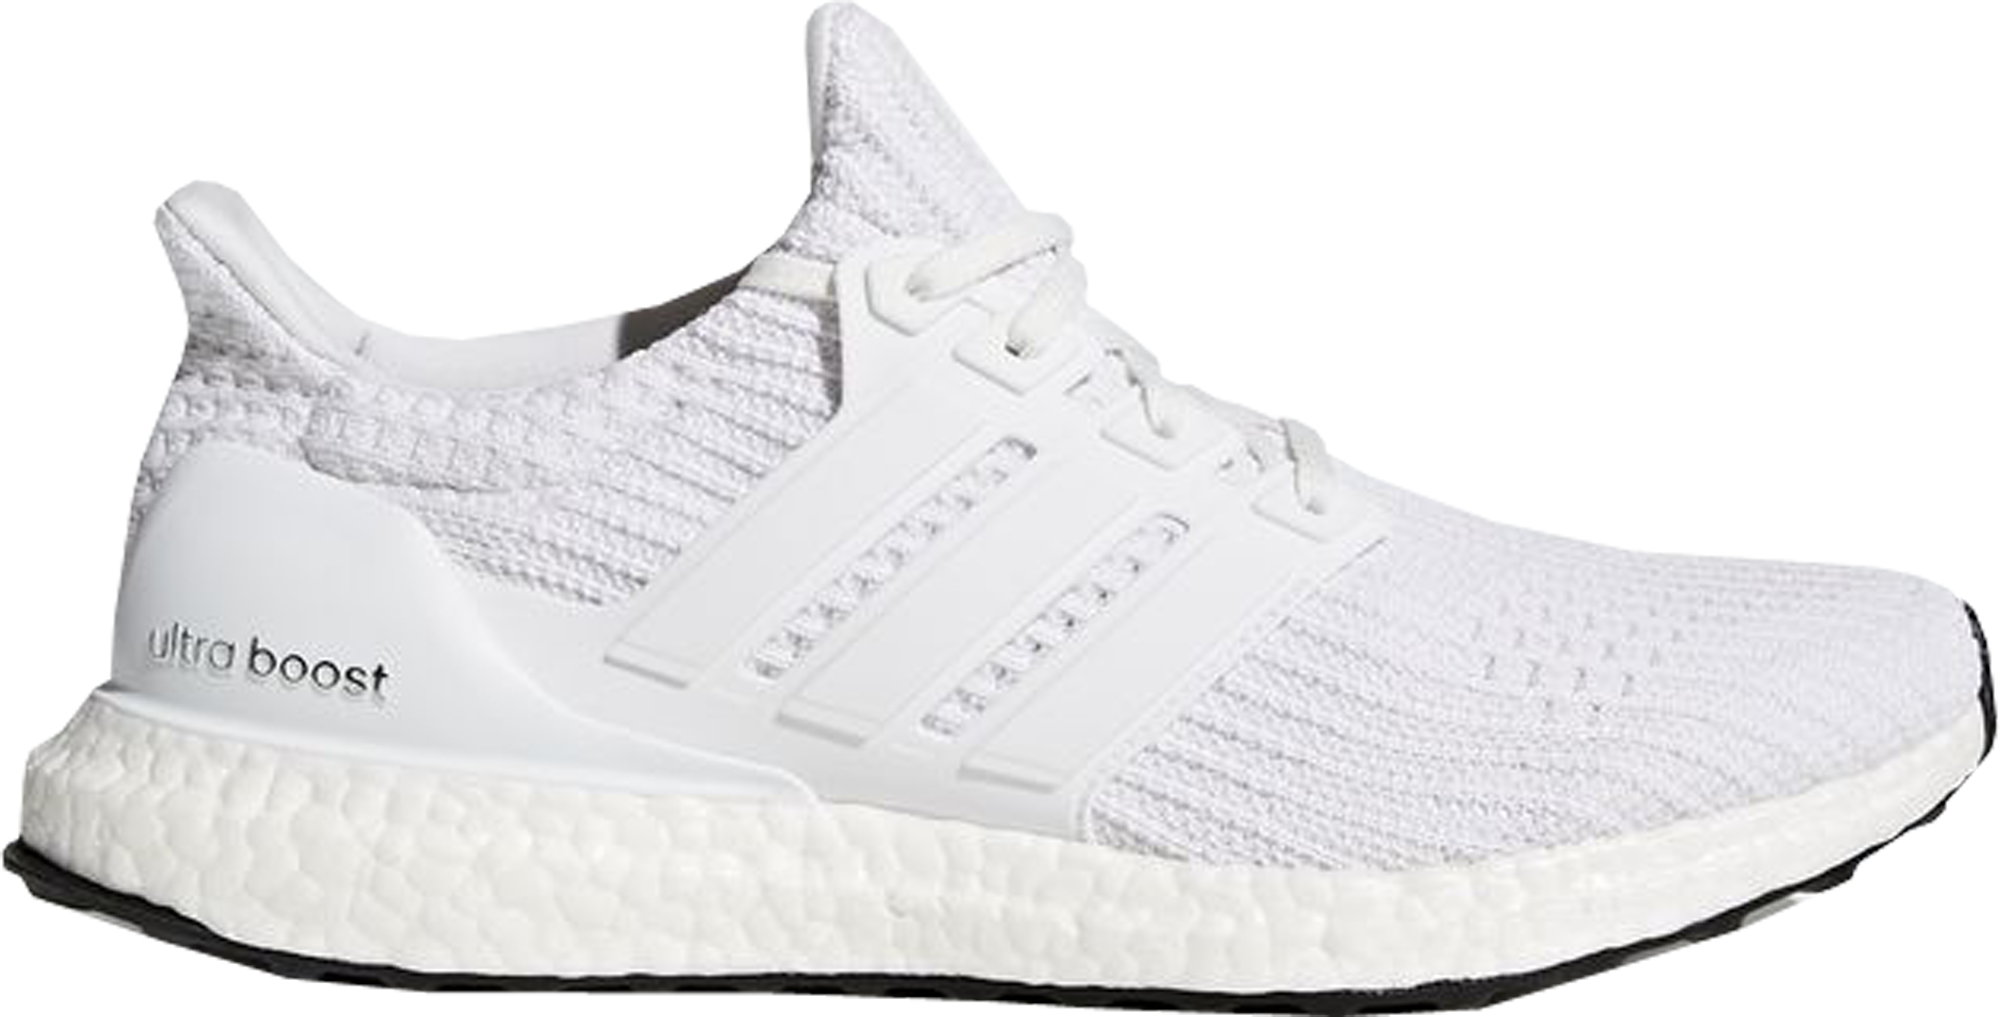 623ebbbc8 ... coupon code for adidas ultra boost 4.0 running white 36ec1 7285b